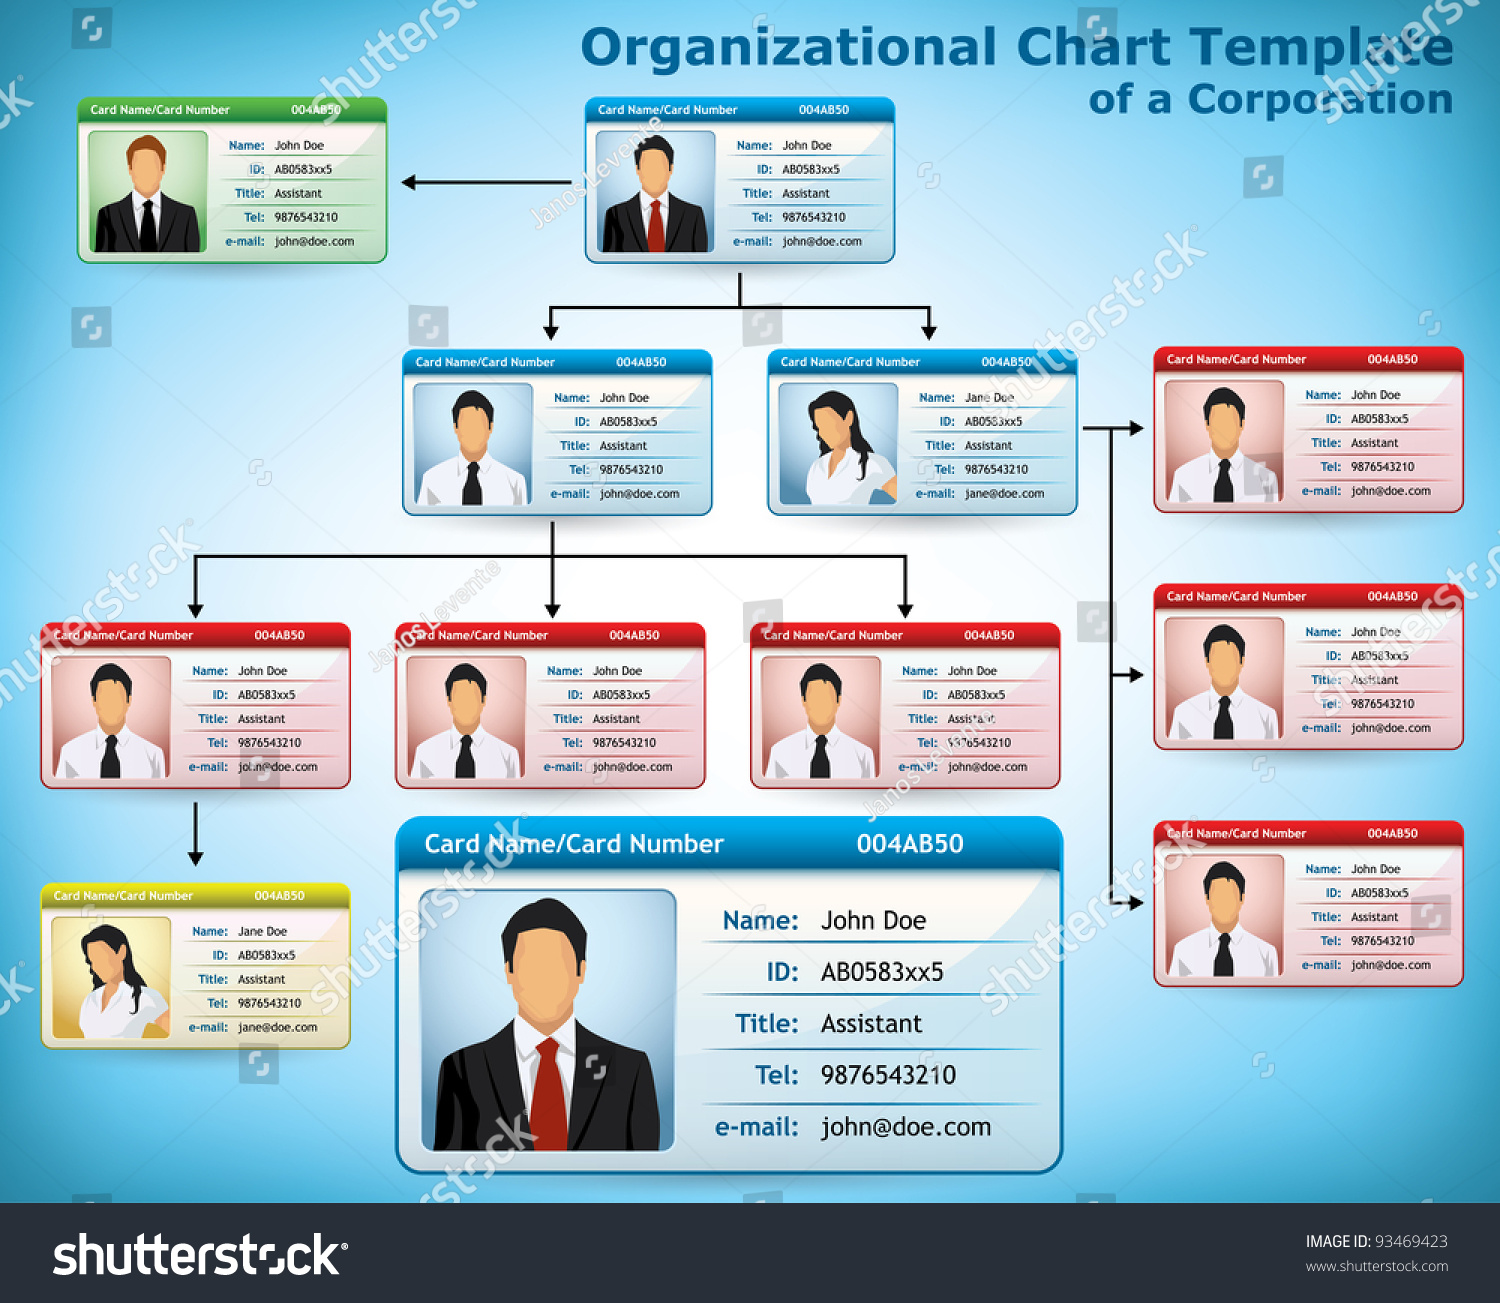 company structure diagram with personalized cards for employees    save to a lightbox